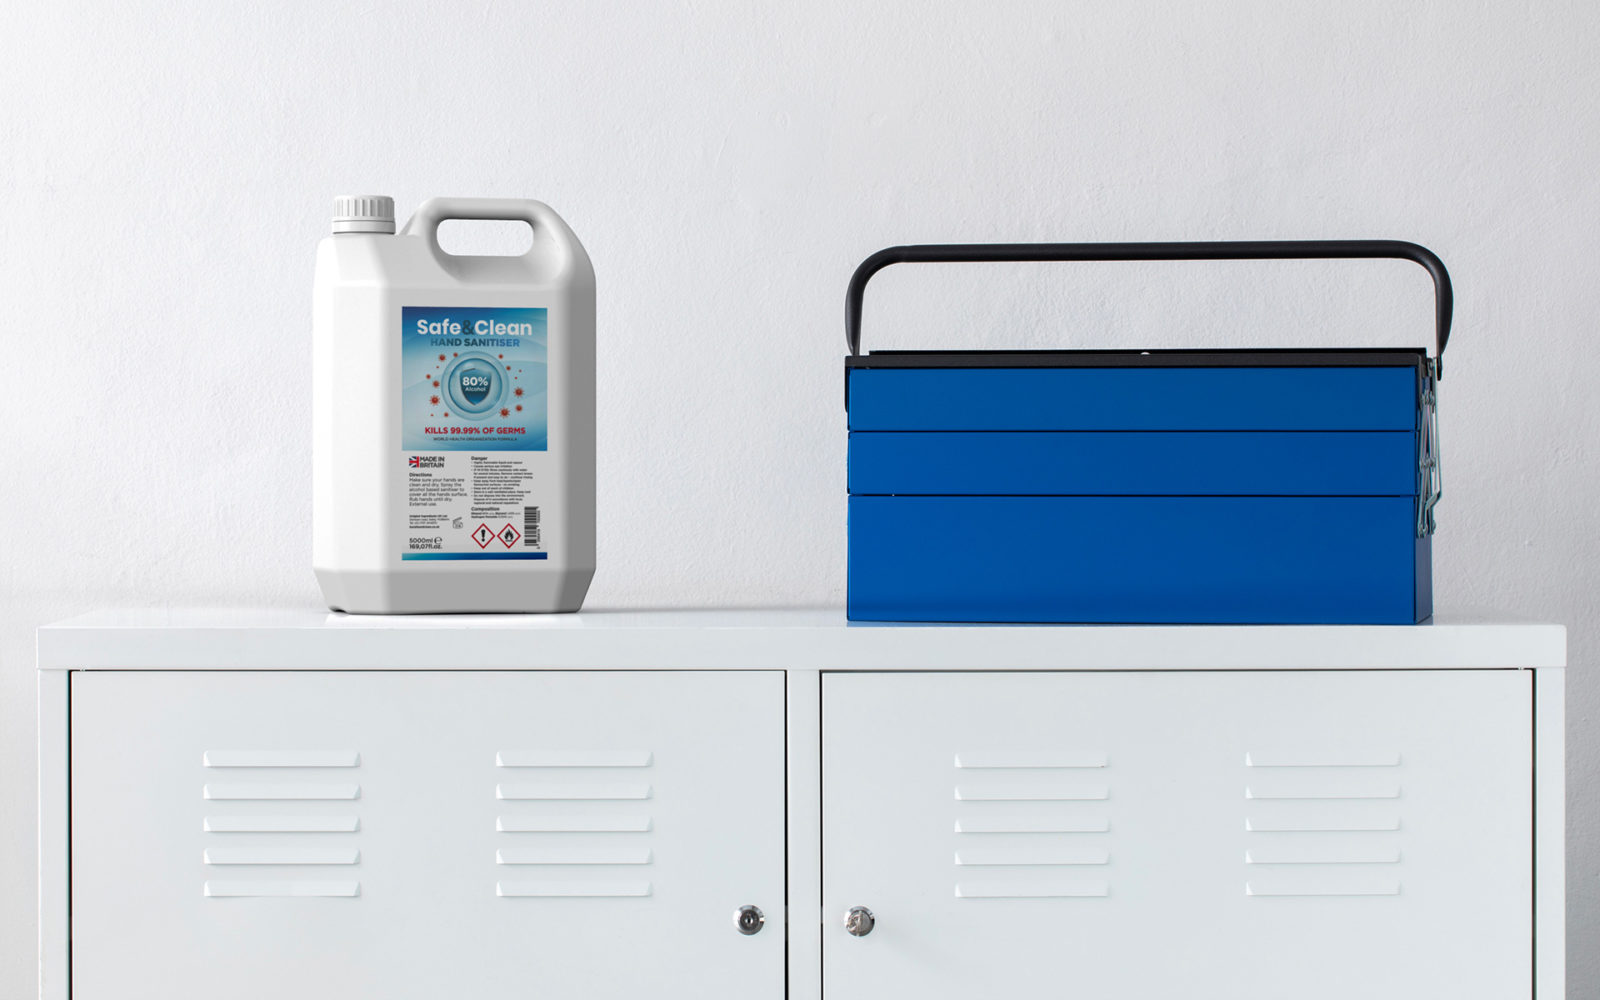 Hand Sanitiser-Tank-Photo in the office-Safe&Clean